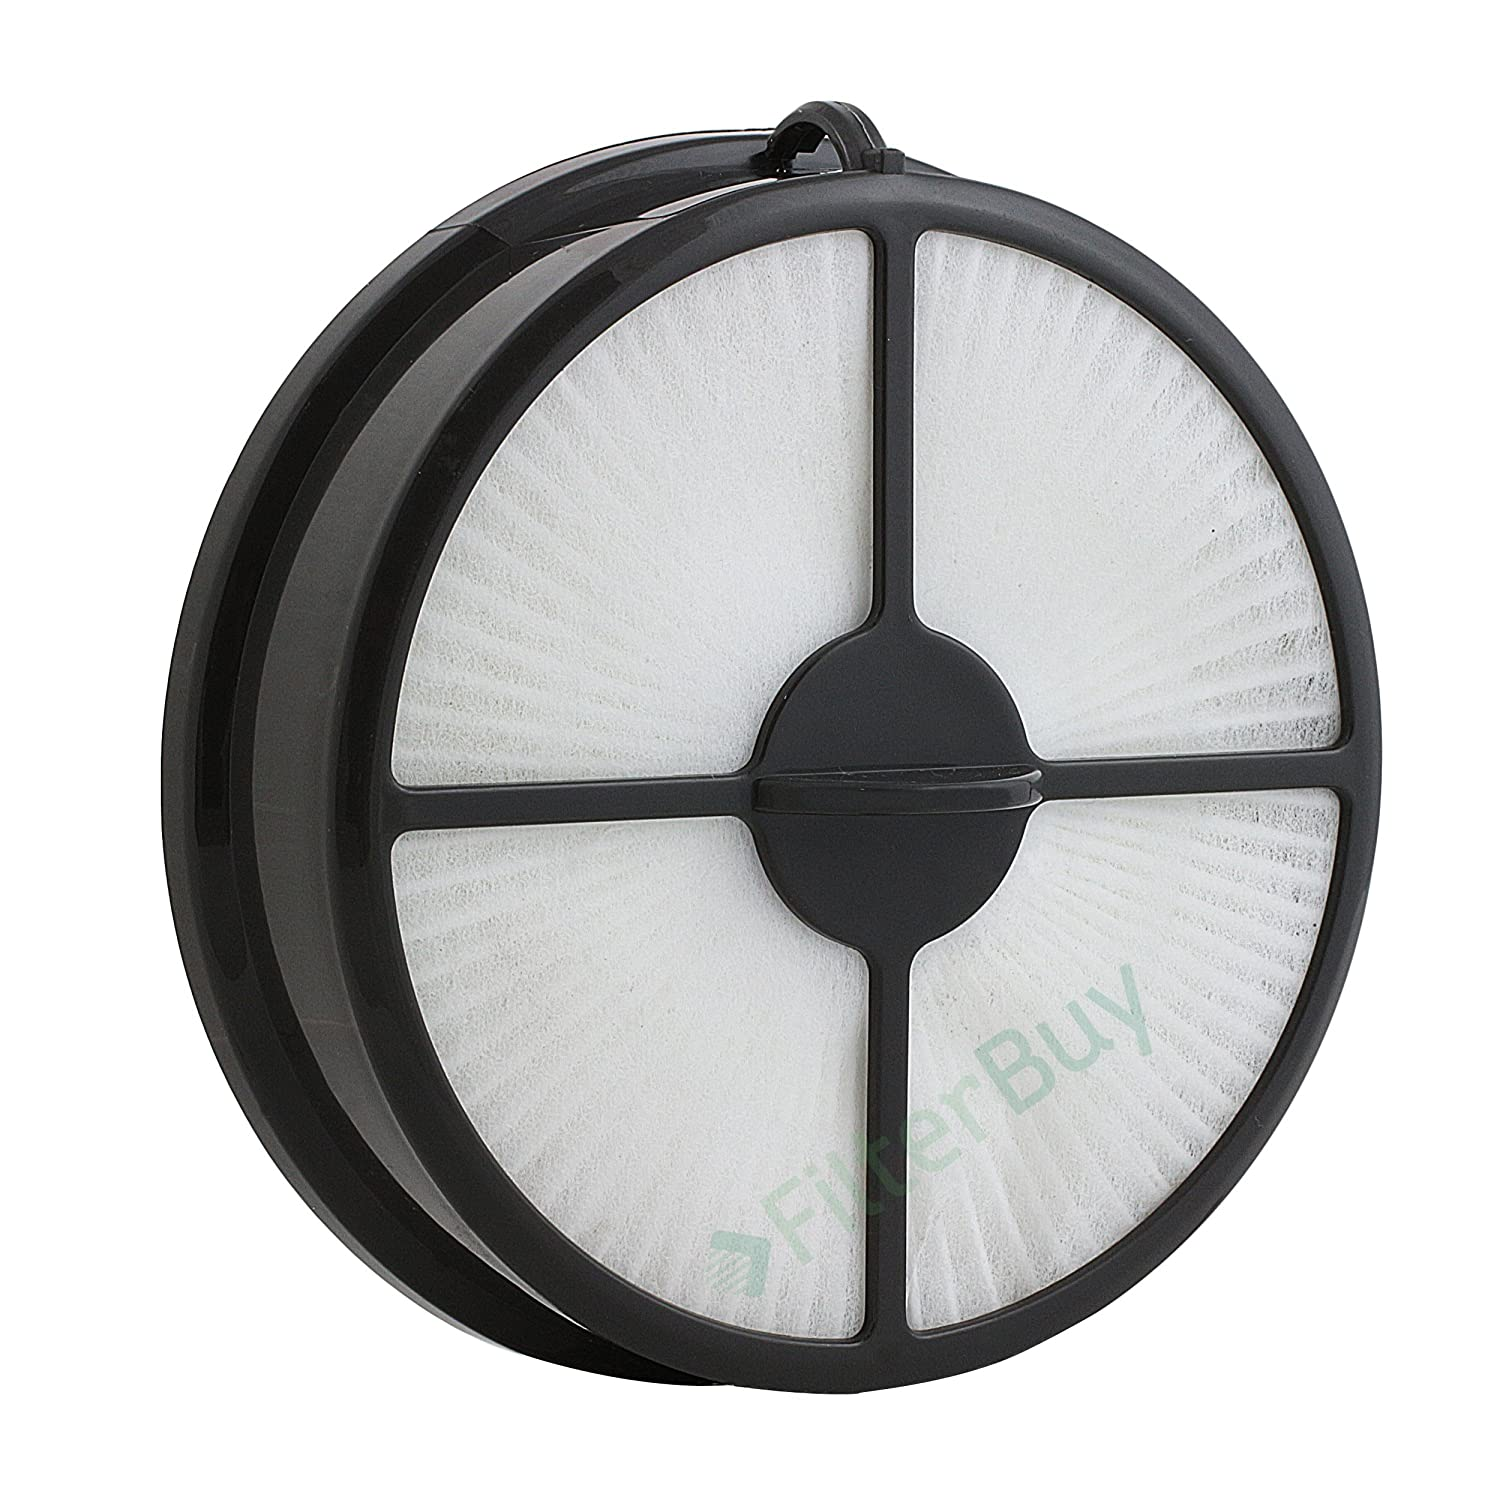 AX-AY-ABHI-100994 Designed to Replace Hoover Part # 303902001 FilterBuy Hoover WindTunnel Air Model UH70400 HEPA Vacuum Filter